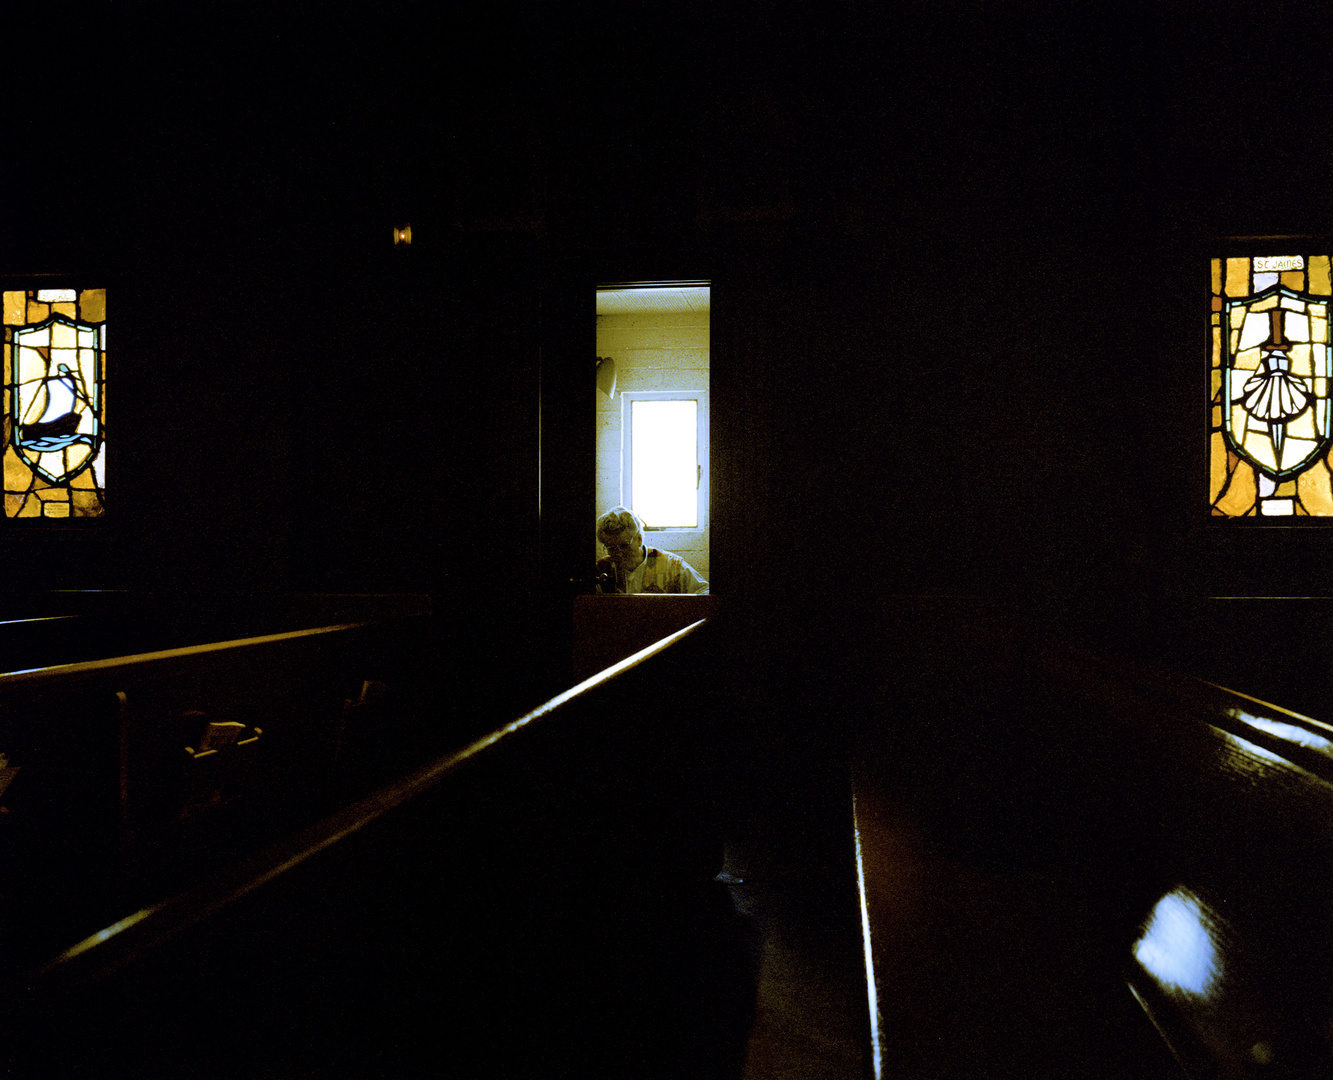 Priest in confessional, San Francisco